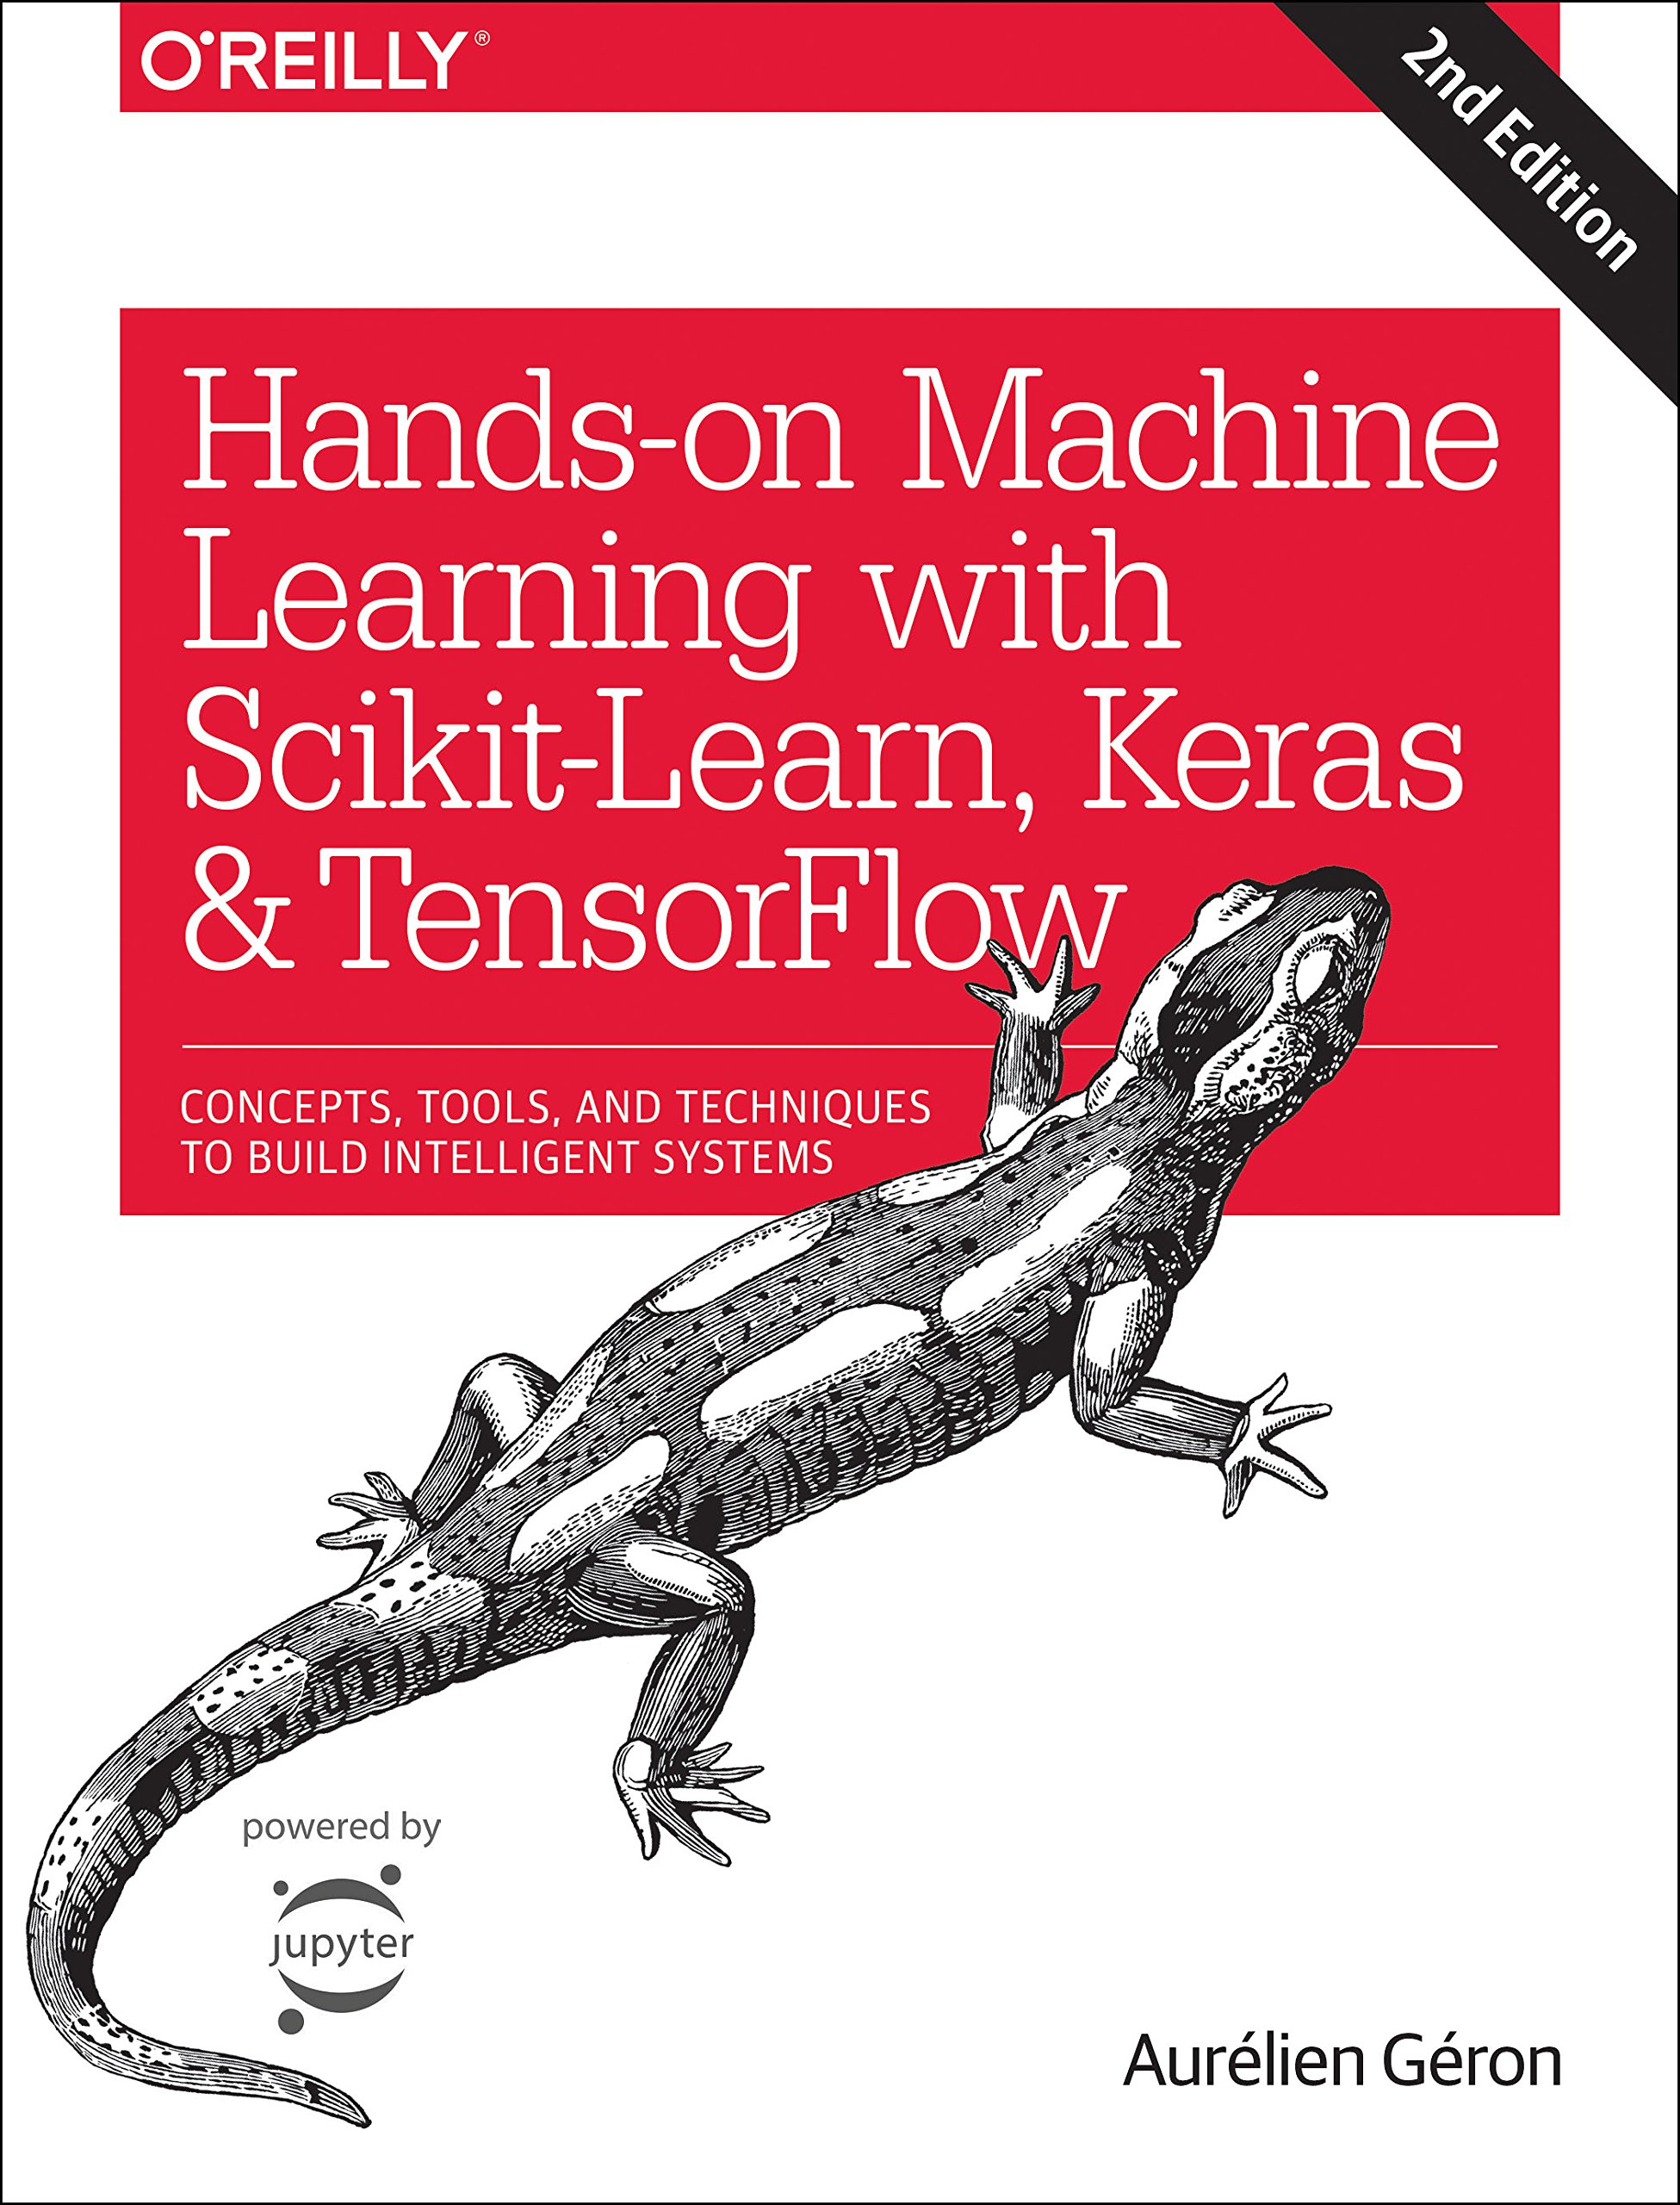 Hands-on Machine Learning with Scikit-Learn, Keras, and TensorFlow: Concepts, Tools, and Techniques to Build Intelligent Systems by O'Reilly Media